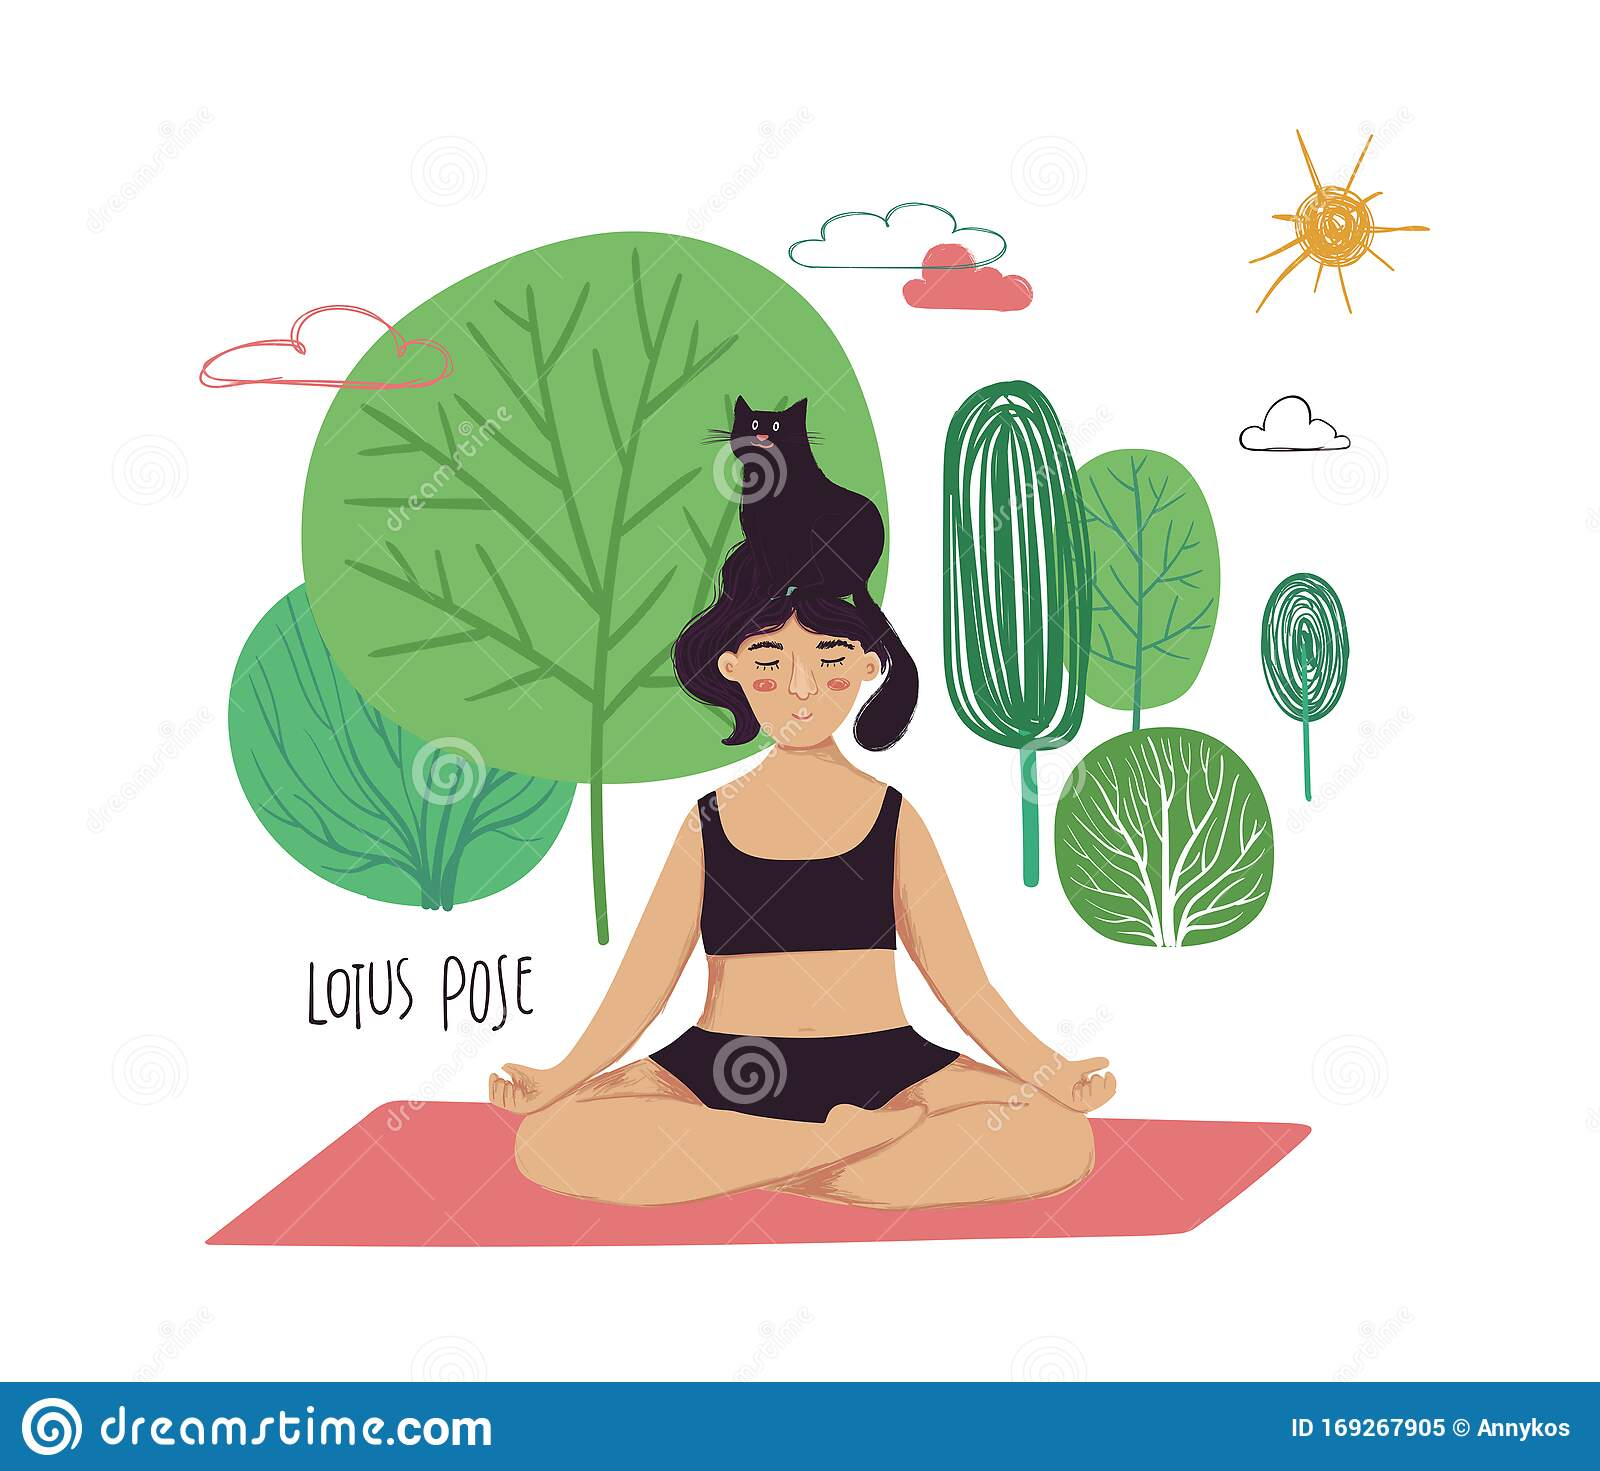 Girl Doing Lotus Yoga Pose With Cat Stock Vector Illustration Of Body Asana 169267905